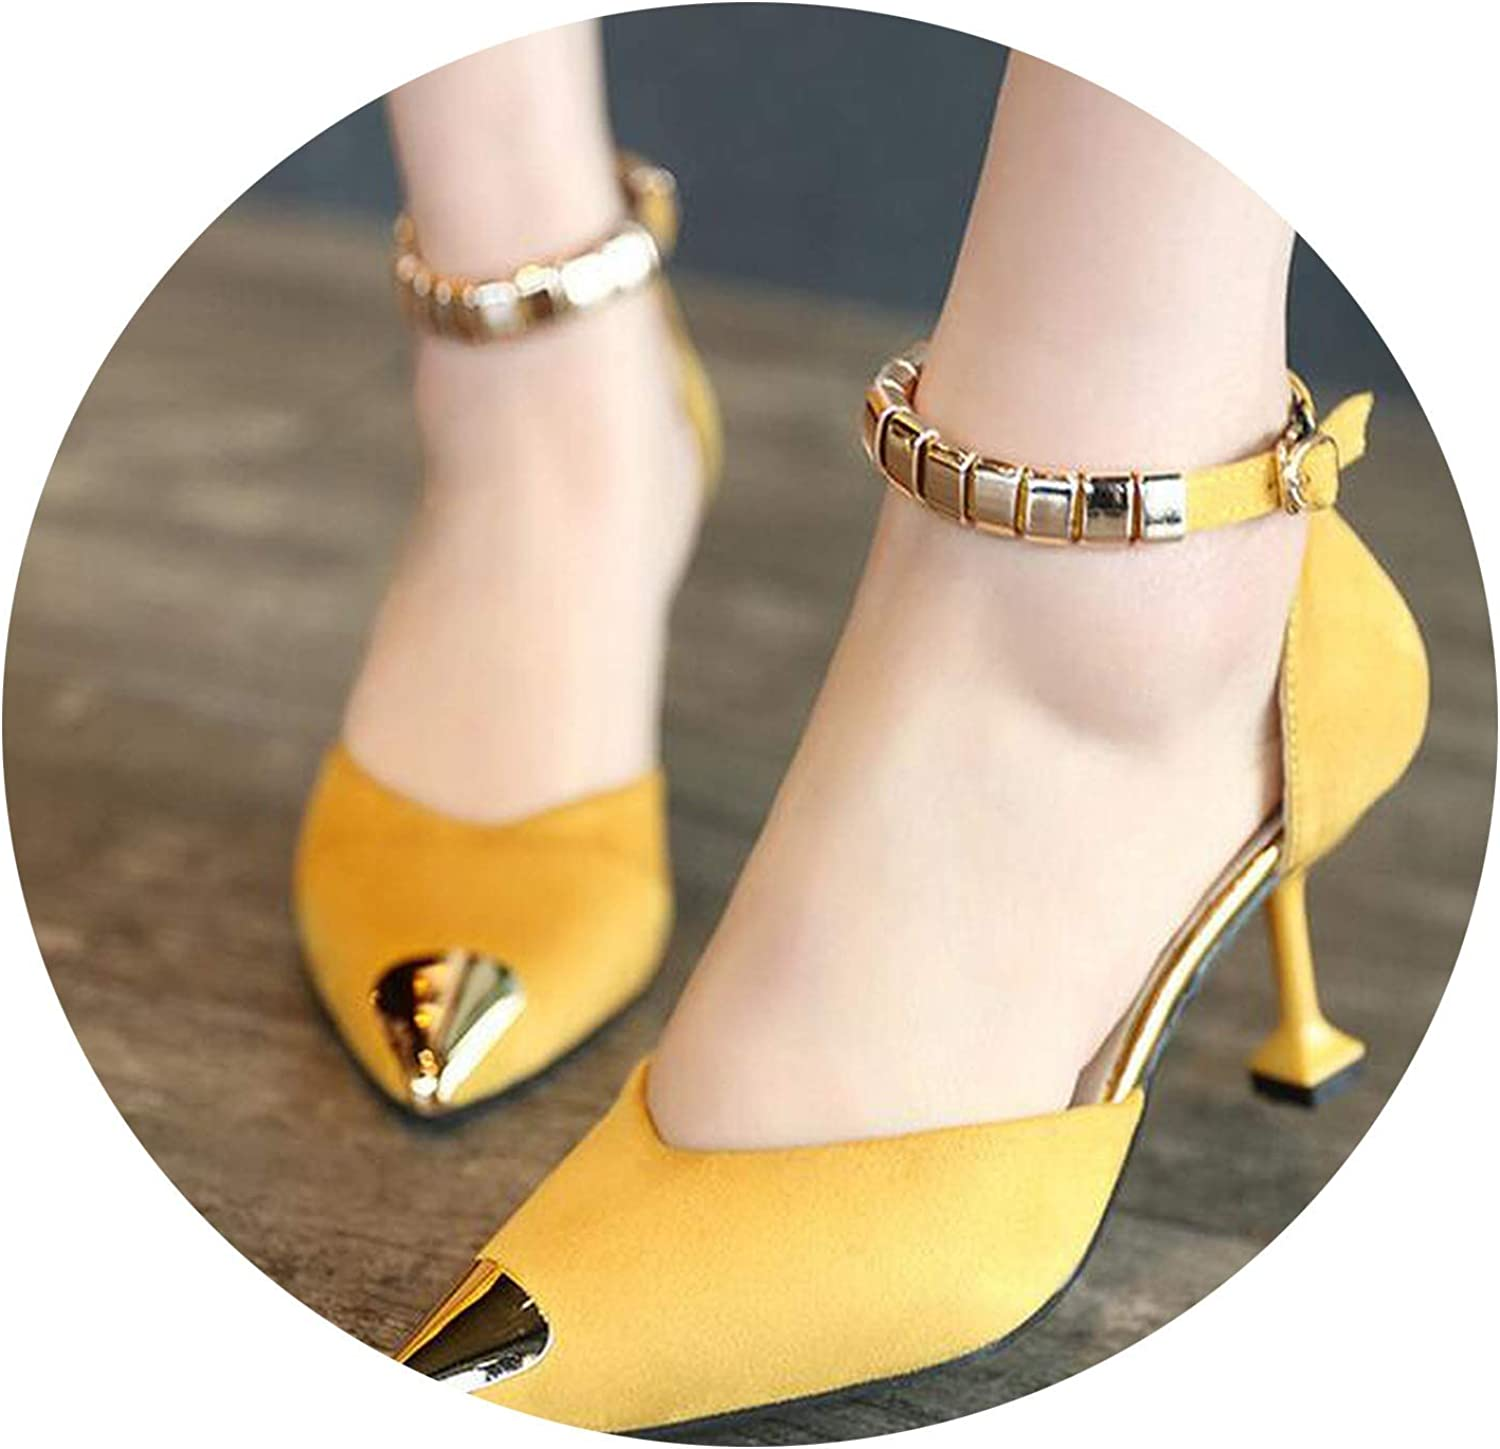 Women Pumps Sexy Buckles High Heels shoes Metal Pointed Toe Wedding shoes Party Women shoes